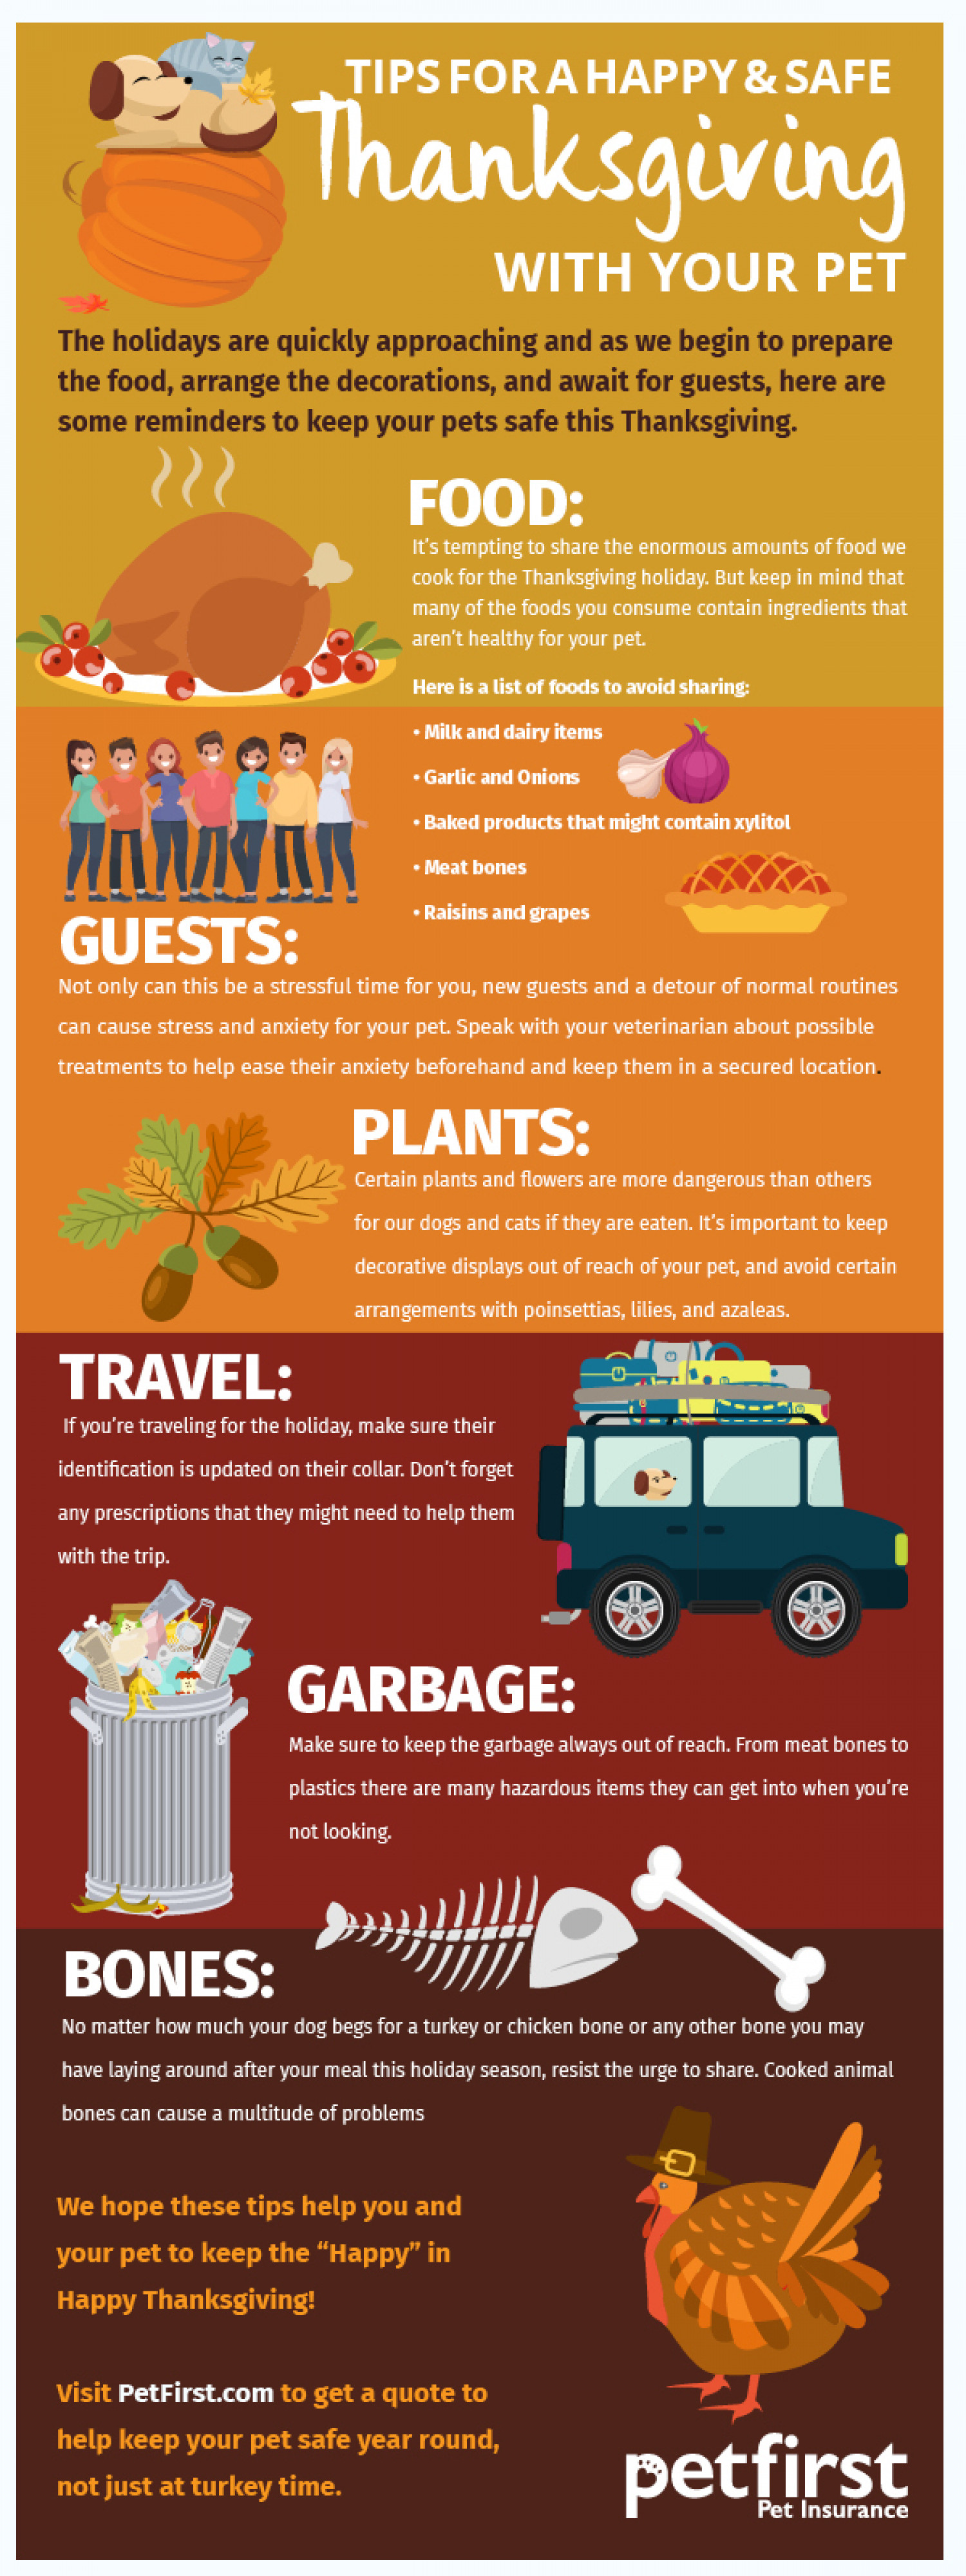 Tips for a happy and safe Thanksgiving with your pet Infographic